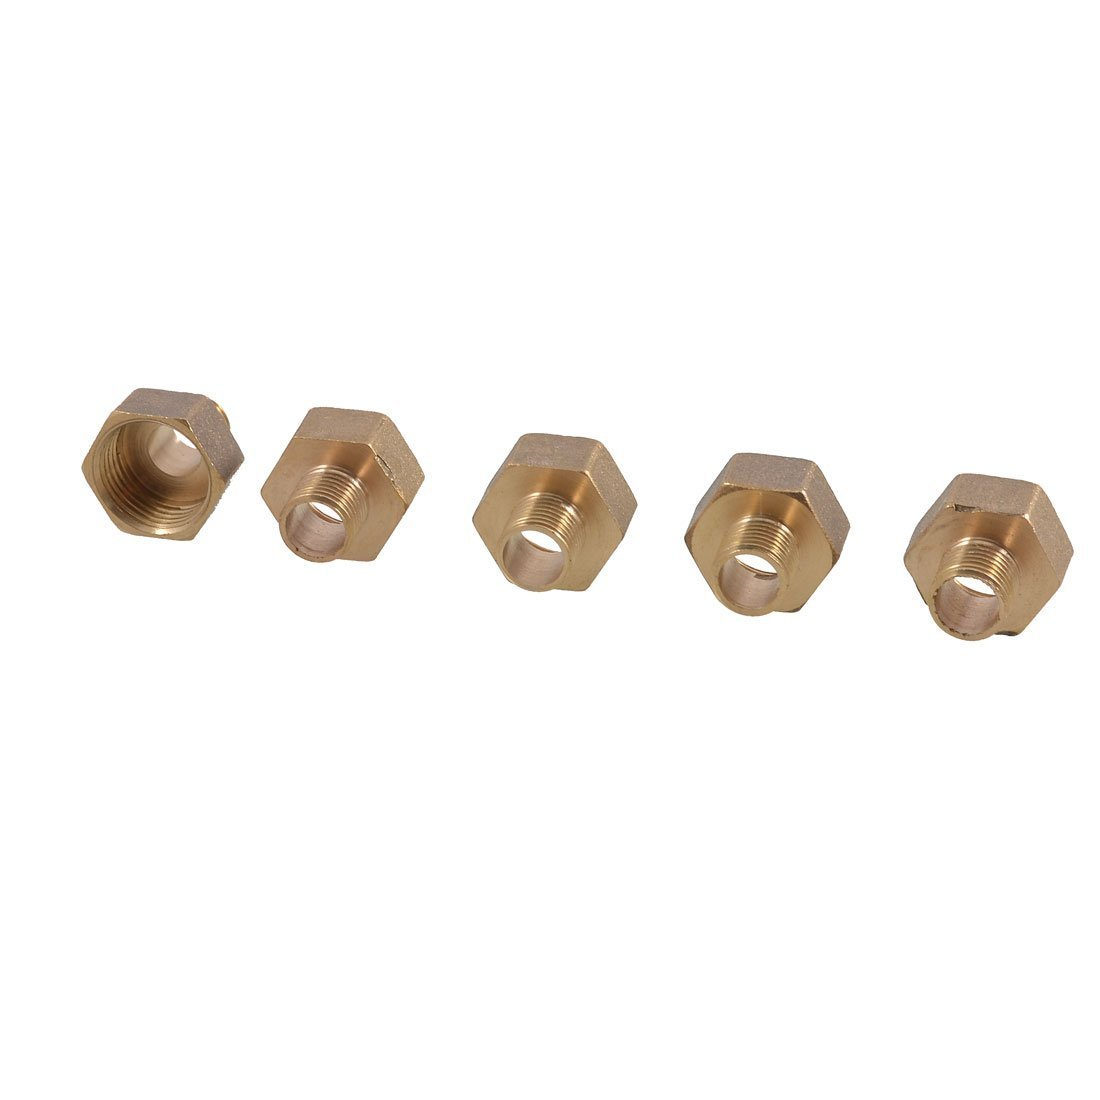 uxcell 5 x 1//4 to 1//2 Thread Brass Straight Hex Nipples Pipe Reducer Adapters